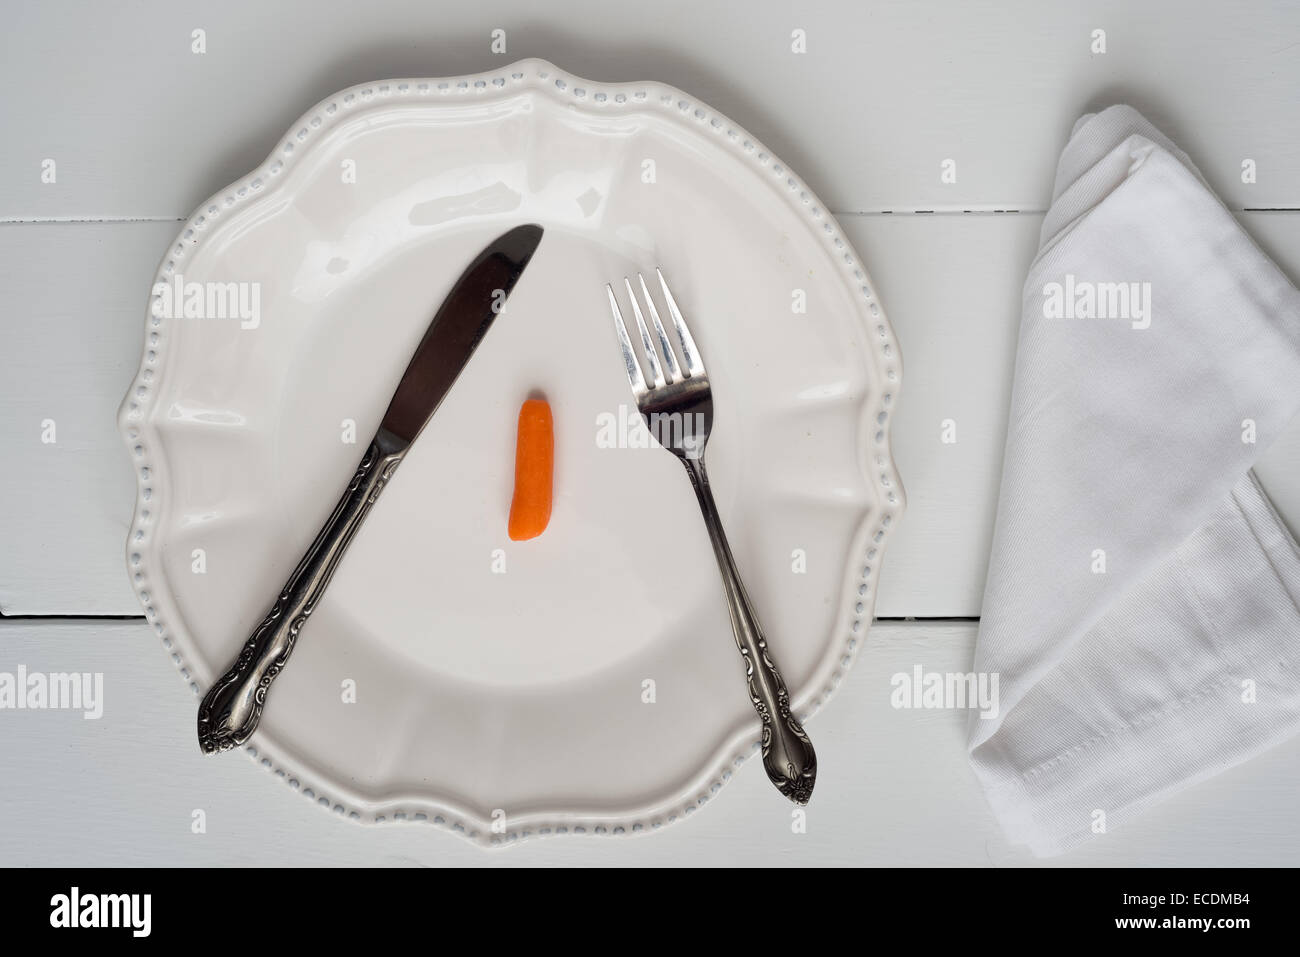 Weight loss new year's concept - single carrot on a plate - Stock Image